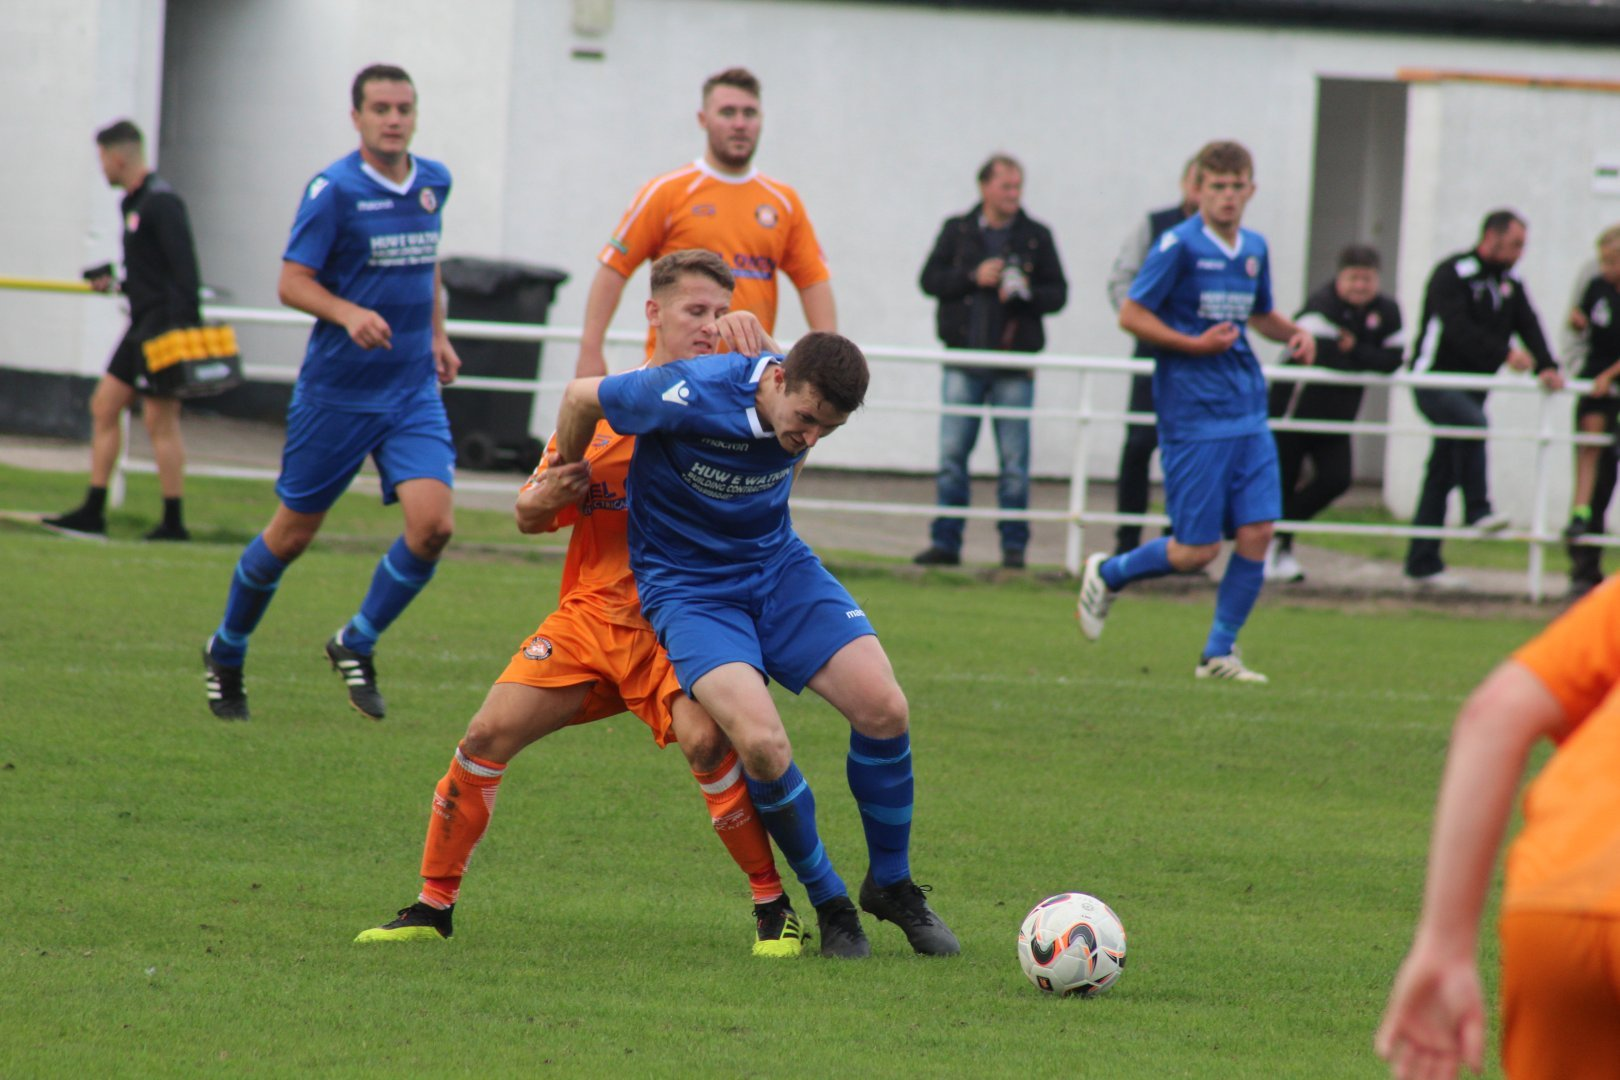 Iain Edmunds in action for Llanrhaeadr at Conwy Borough.